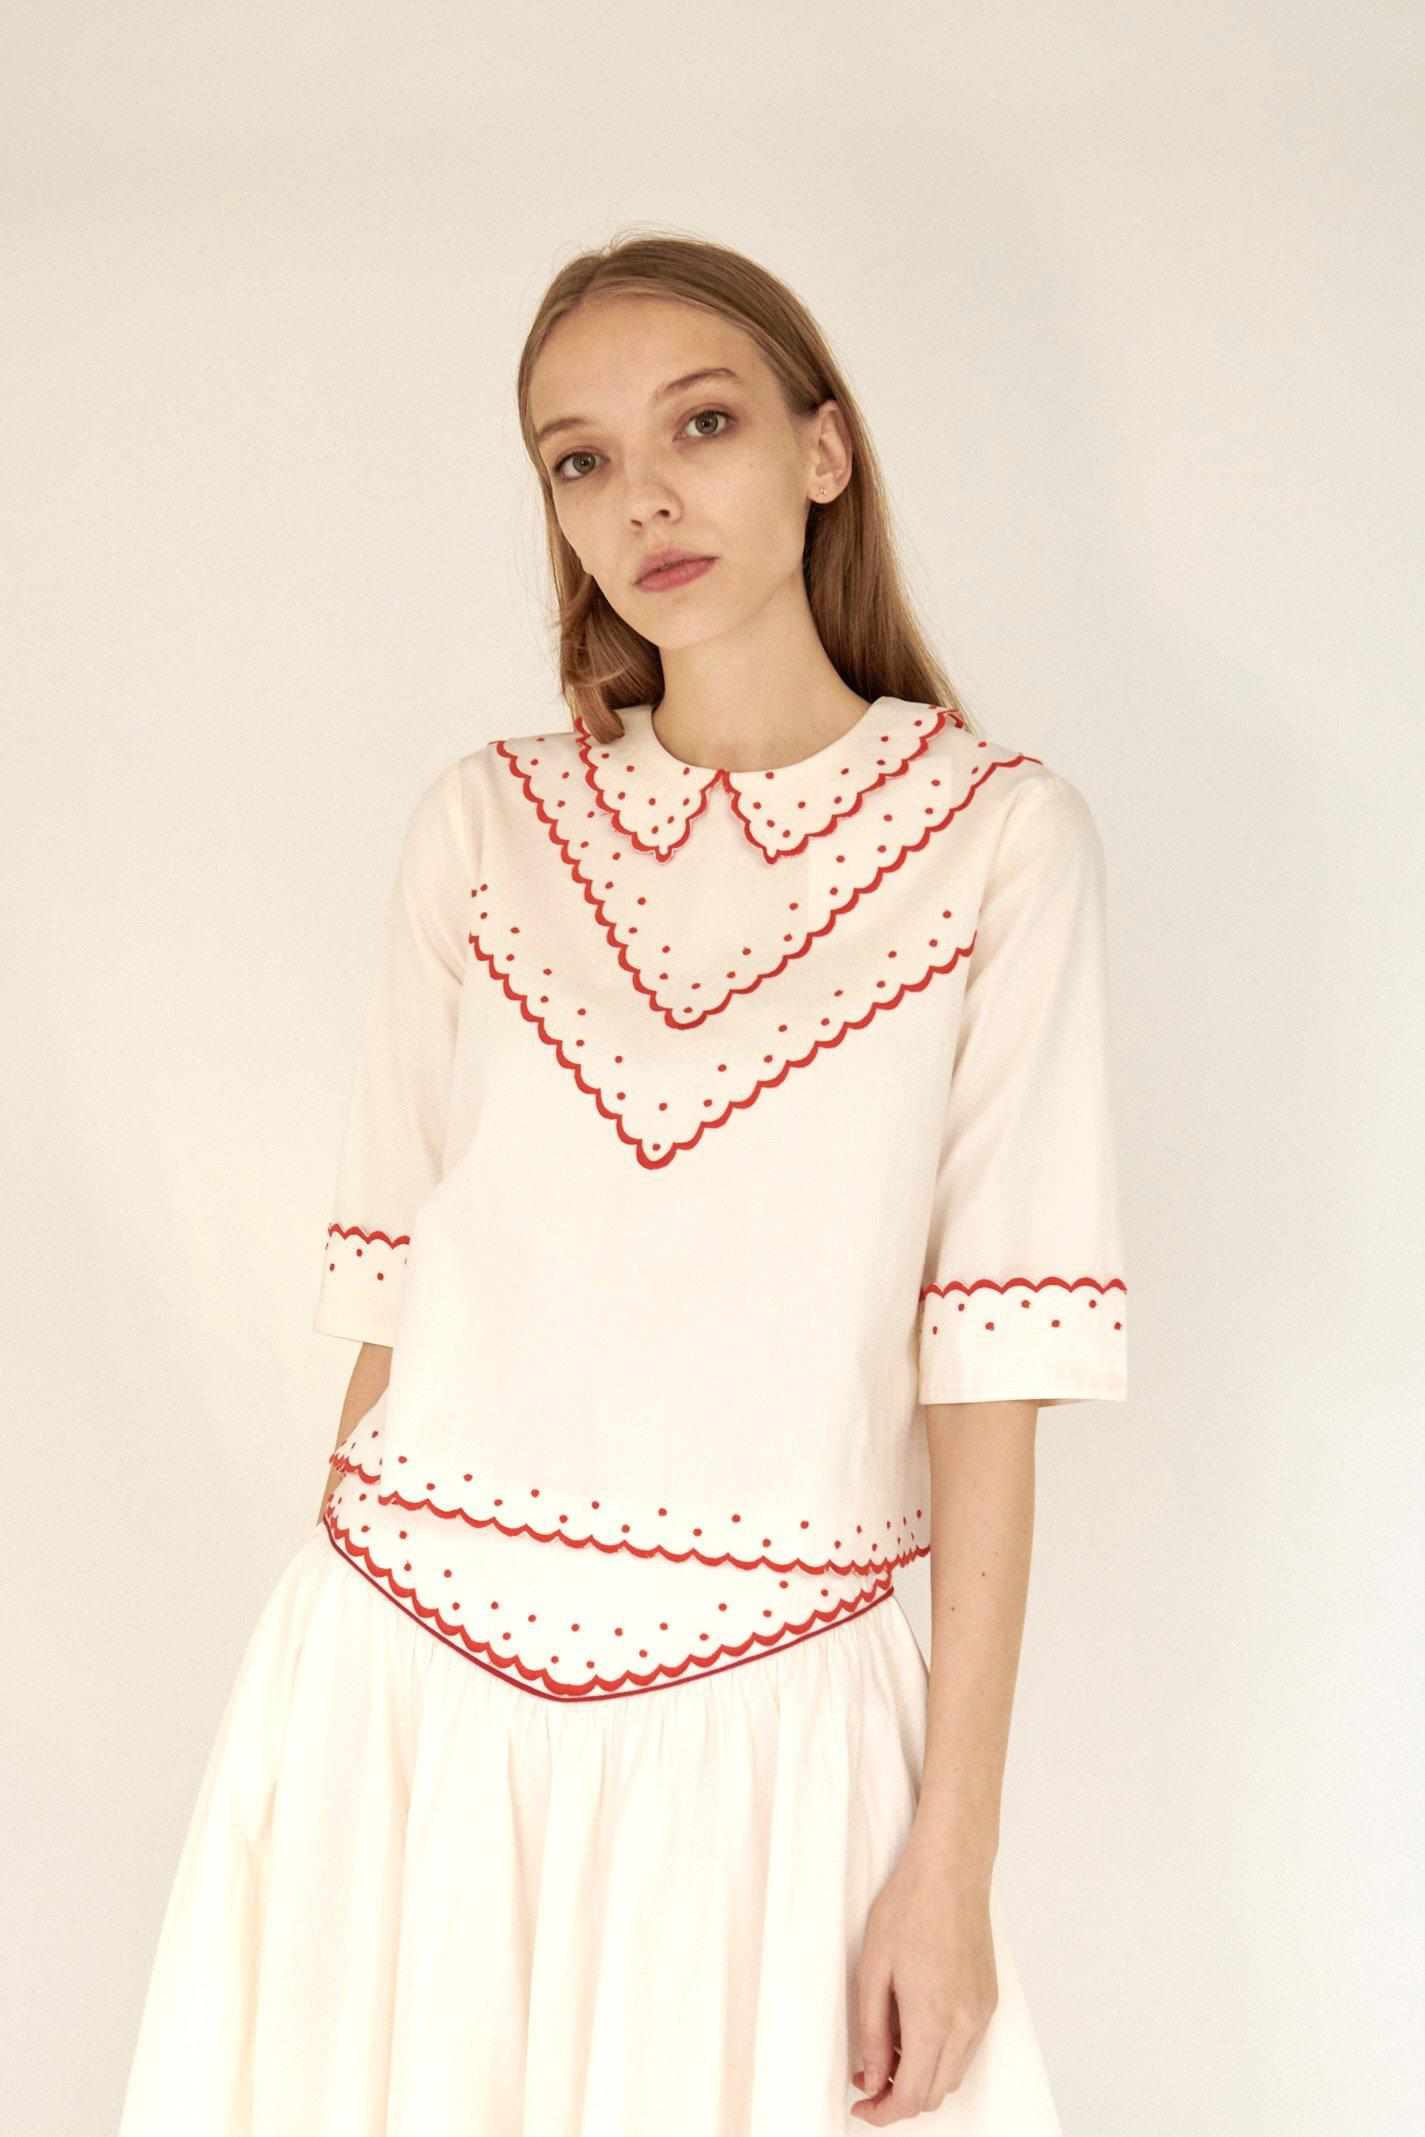 Shirley Blouse in Cream with Red Embroidery